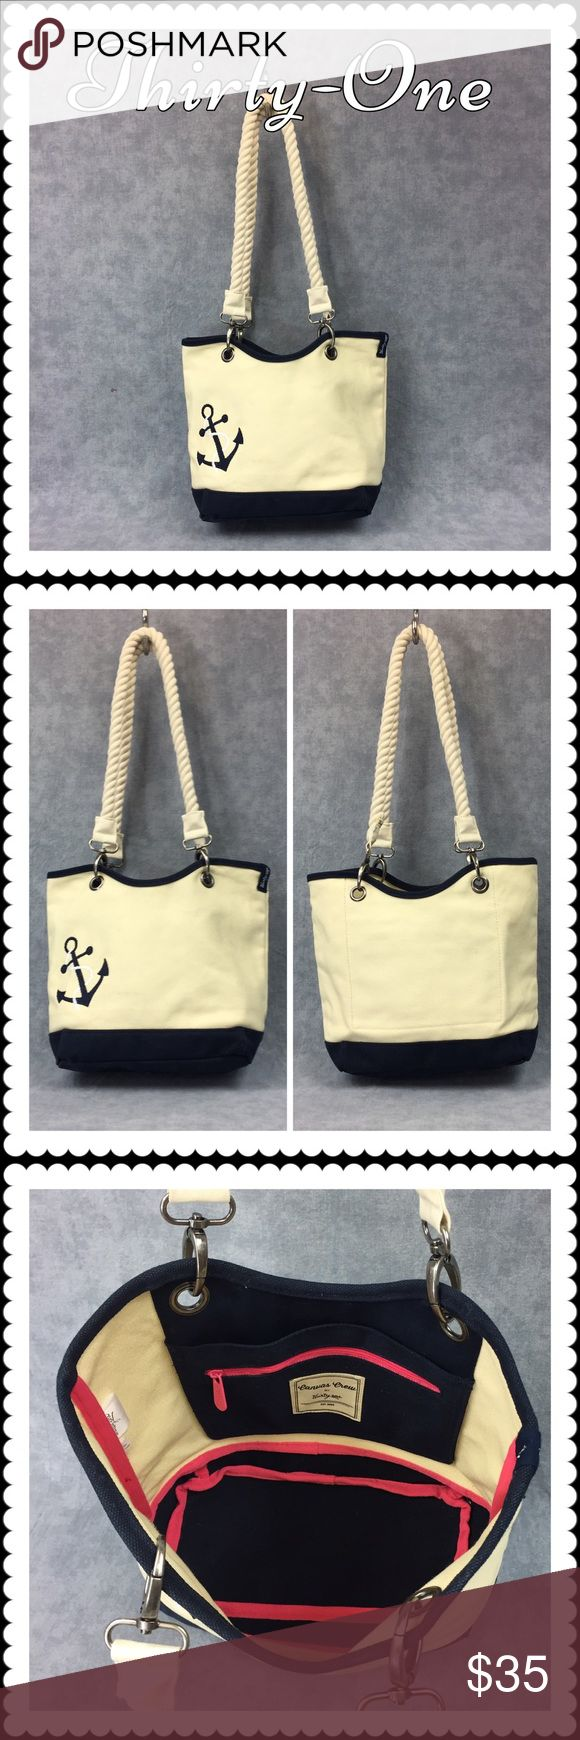 👜 Thirty One Canvas Crew Tote (4858) 👜 Thirty One Canvas Crew Tote (4858) 👜 With added rope and anchor. Canvas and Navy, come with original blue straps and the add-on rope straps as shown. In beautiful condition. Like new with only a minor mark on the outside (will add photo). One inside slip-in pocket and zippered pocket. Top has blue straps to tie closed. Incredible bag!  (Mini version also available. See separate listing) Thirty-One Bags Totes